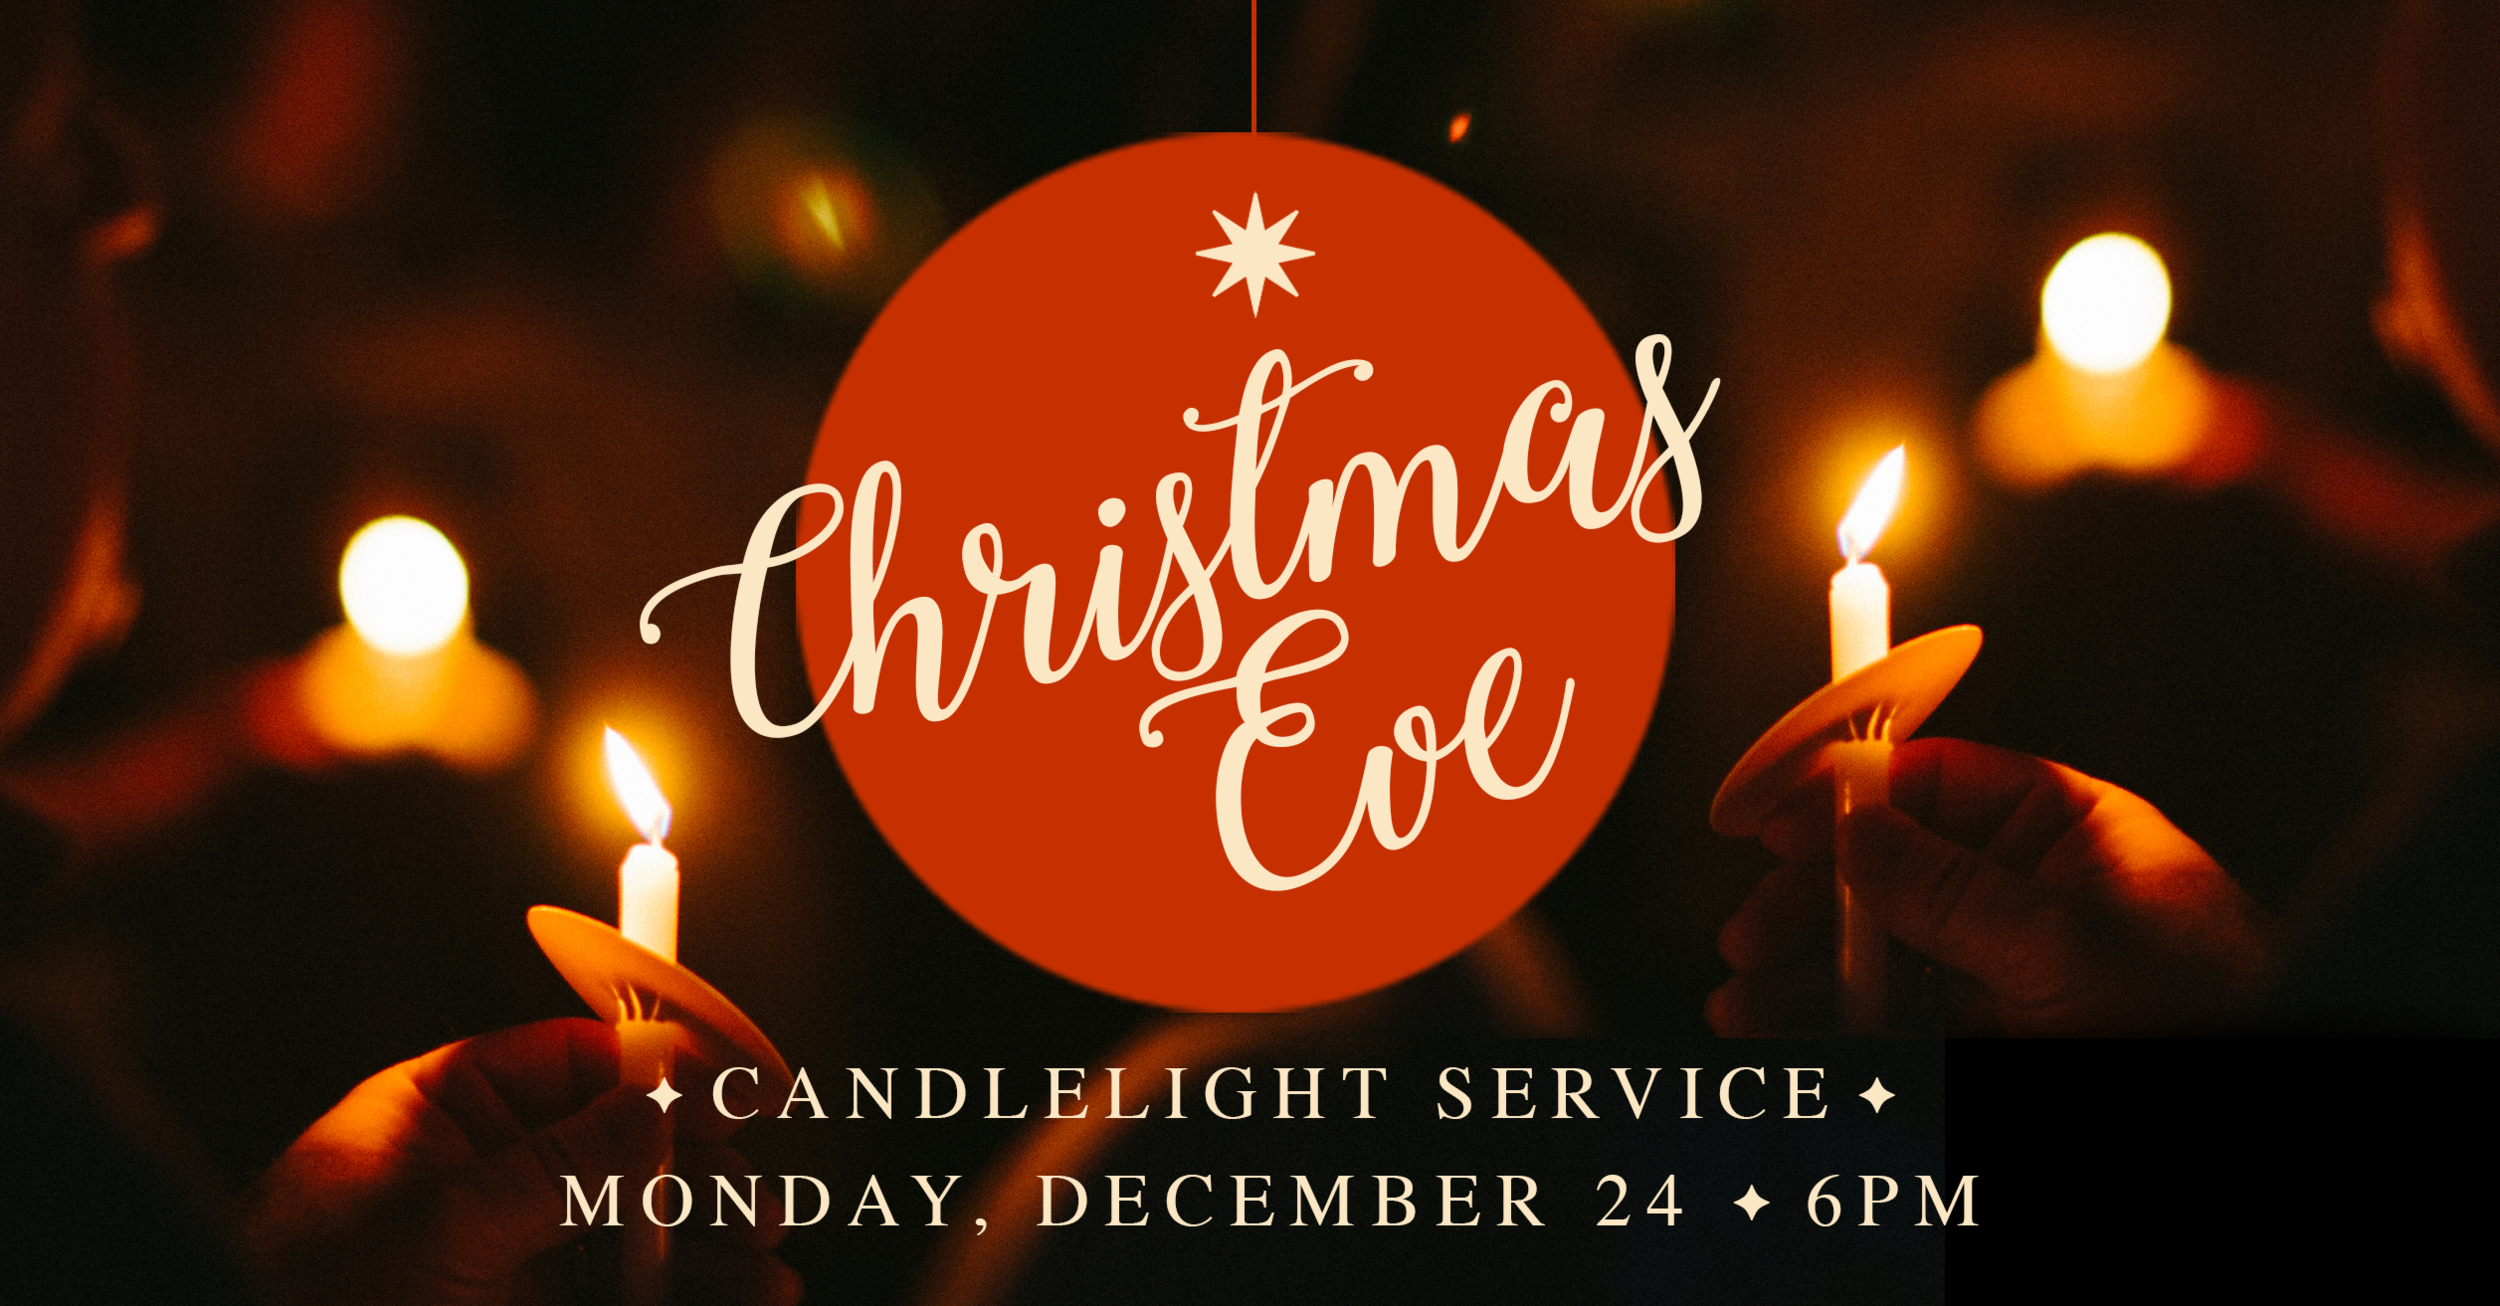 Christ Church Toms River Nj Christmas Eve Services 2020 Christmas Eve Candlelight Service — Cornerstone Christian Church